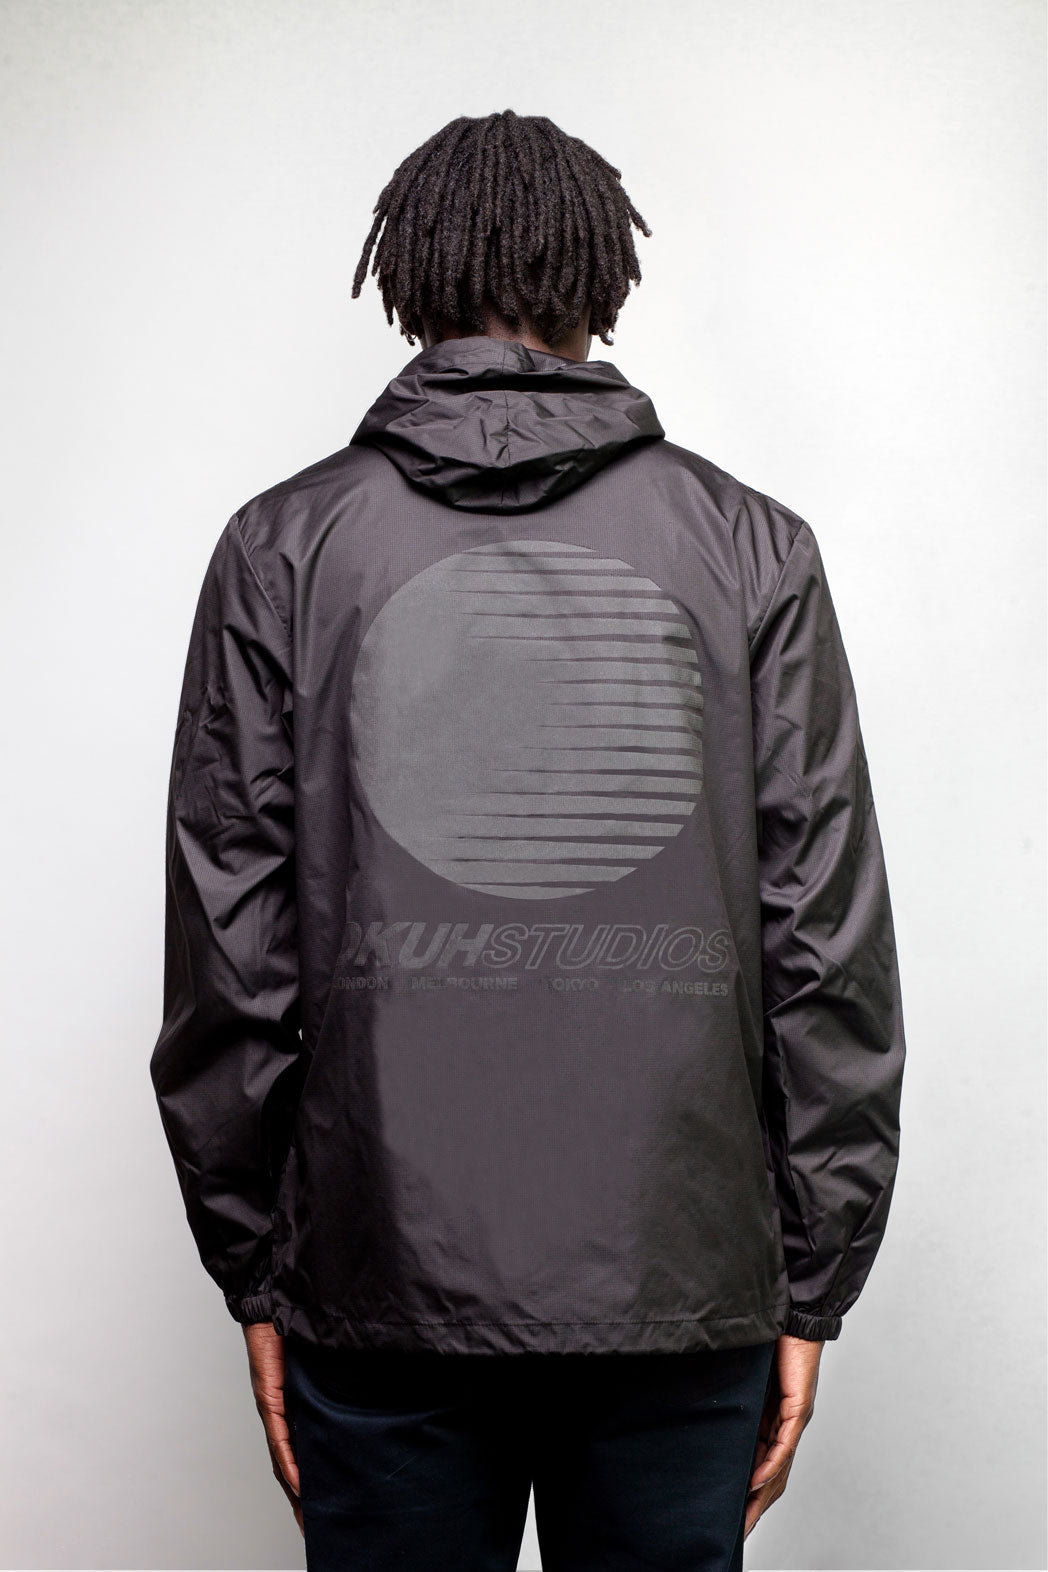 Reflective Tech Jacket - okuhstudios